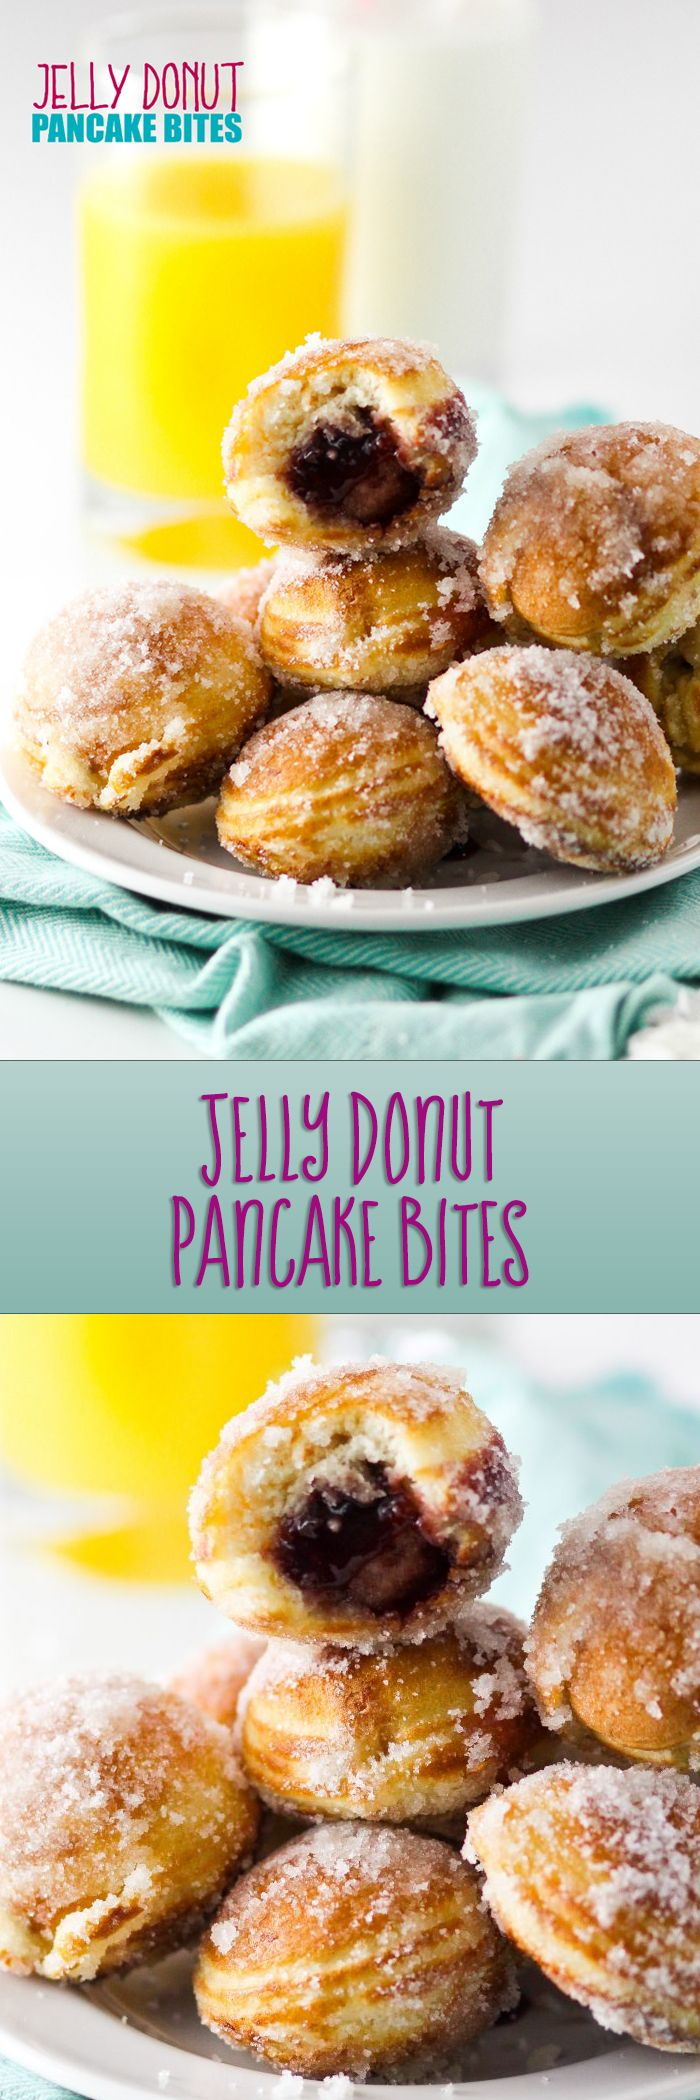 Jelly Donut Pancake Bites transform basic pancake batter into a delicious and memorable breakfast. We love these so much!